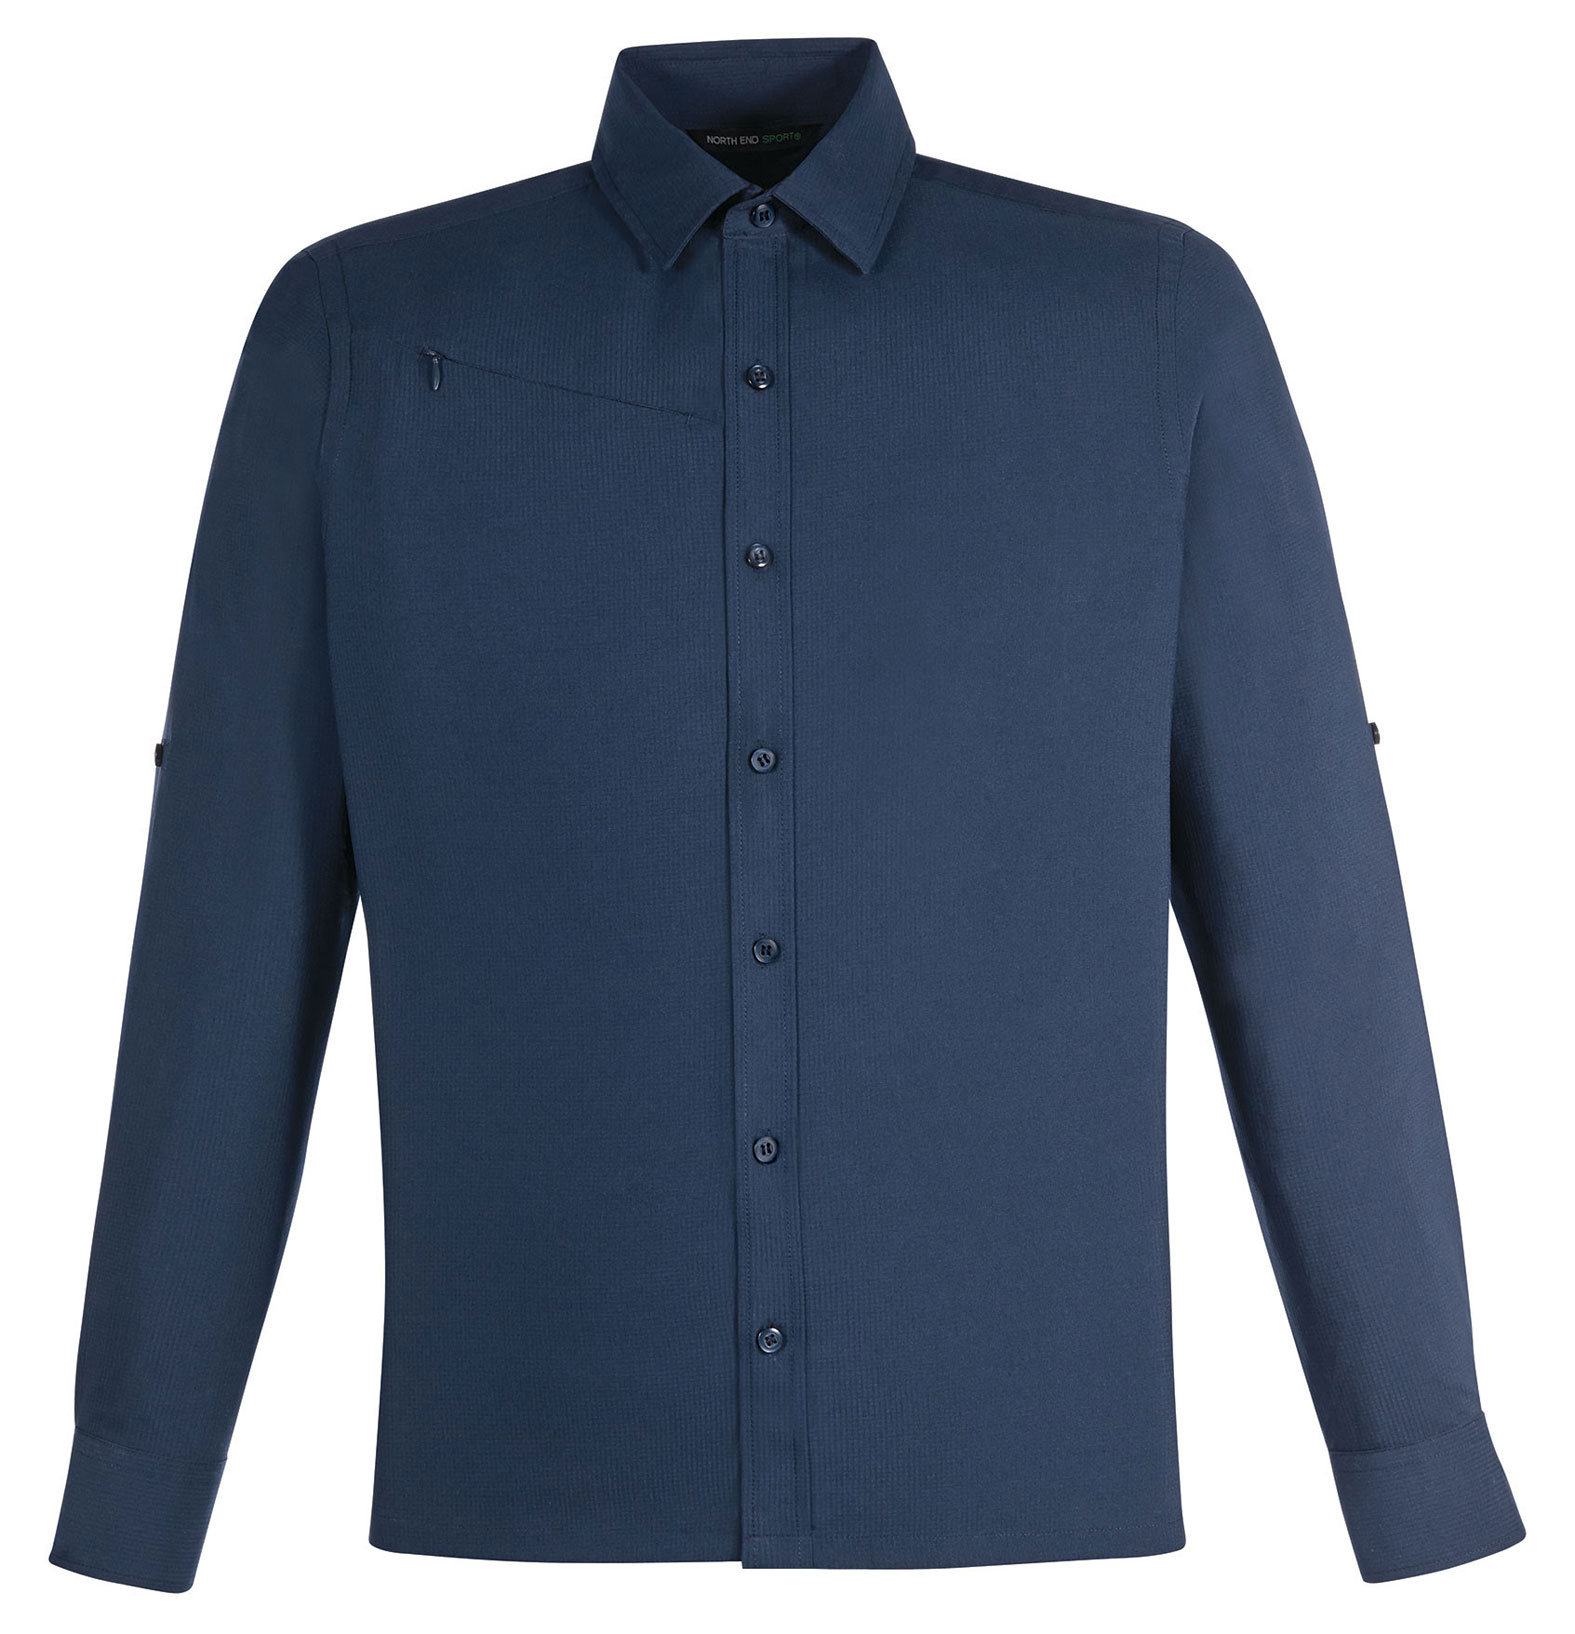 Mens Rejuvenate Performance Shirt